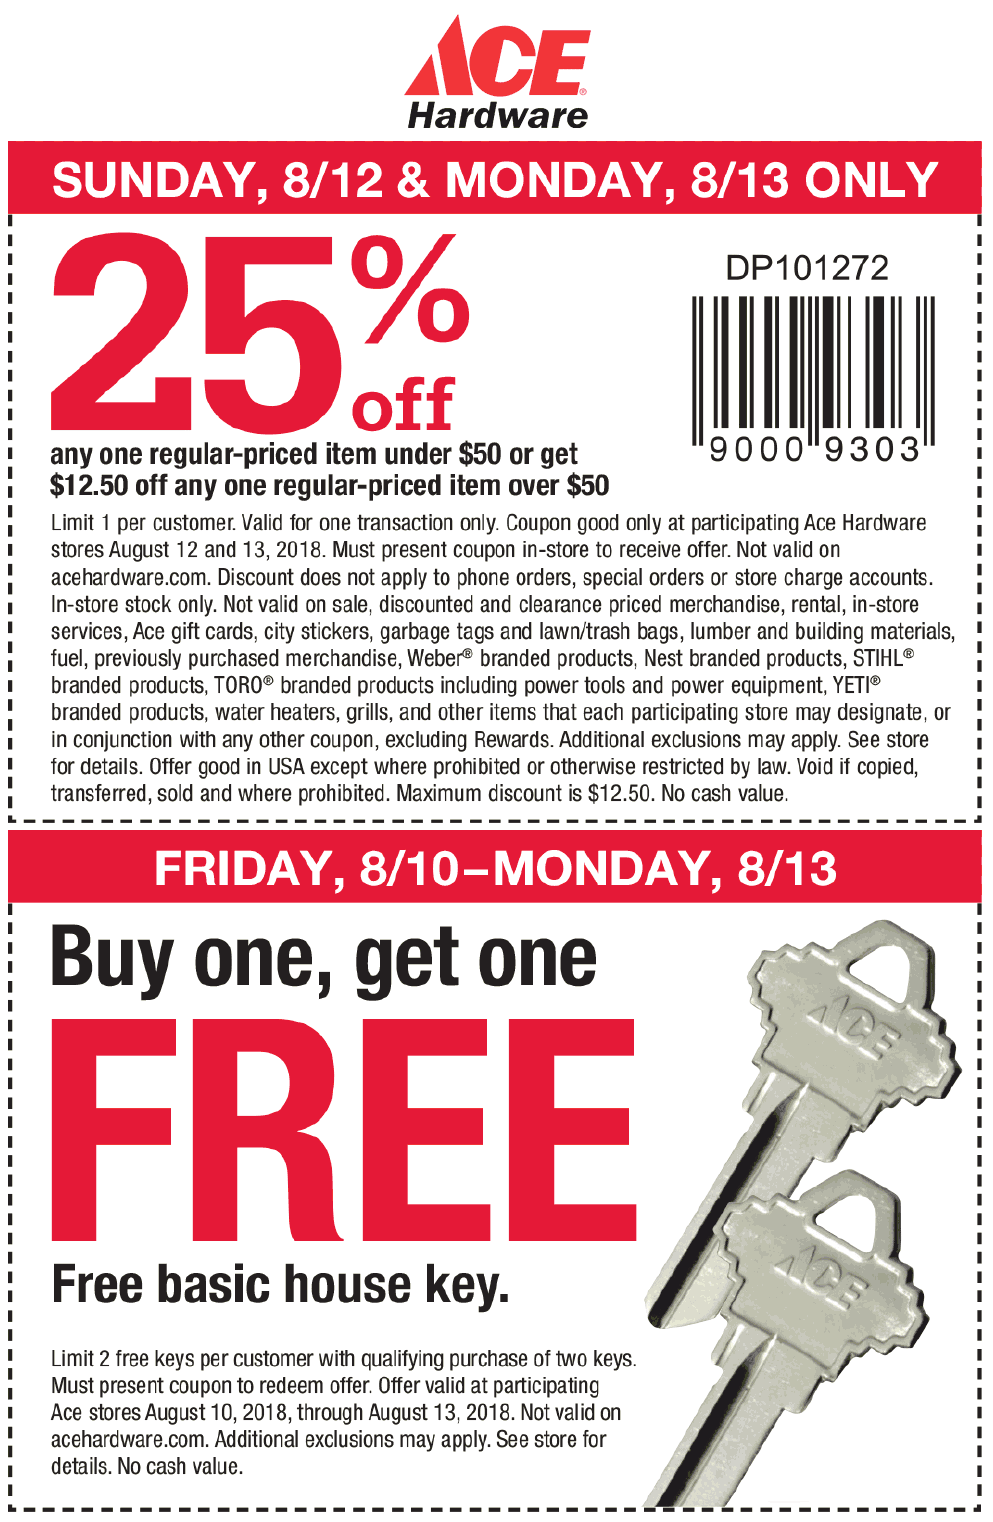 medium resolution of ace hardware coupon july 2019 25 off a single item more at ace hardware